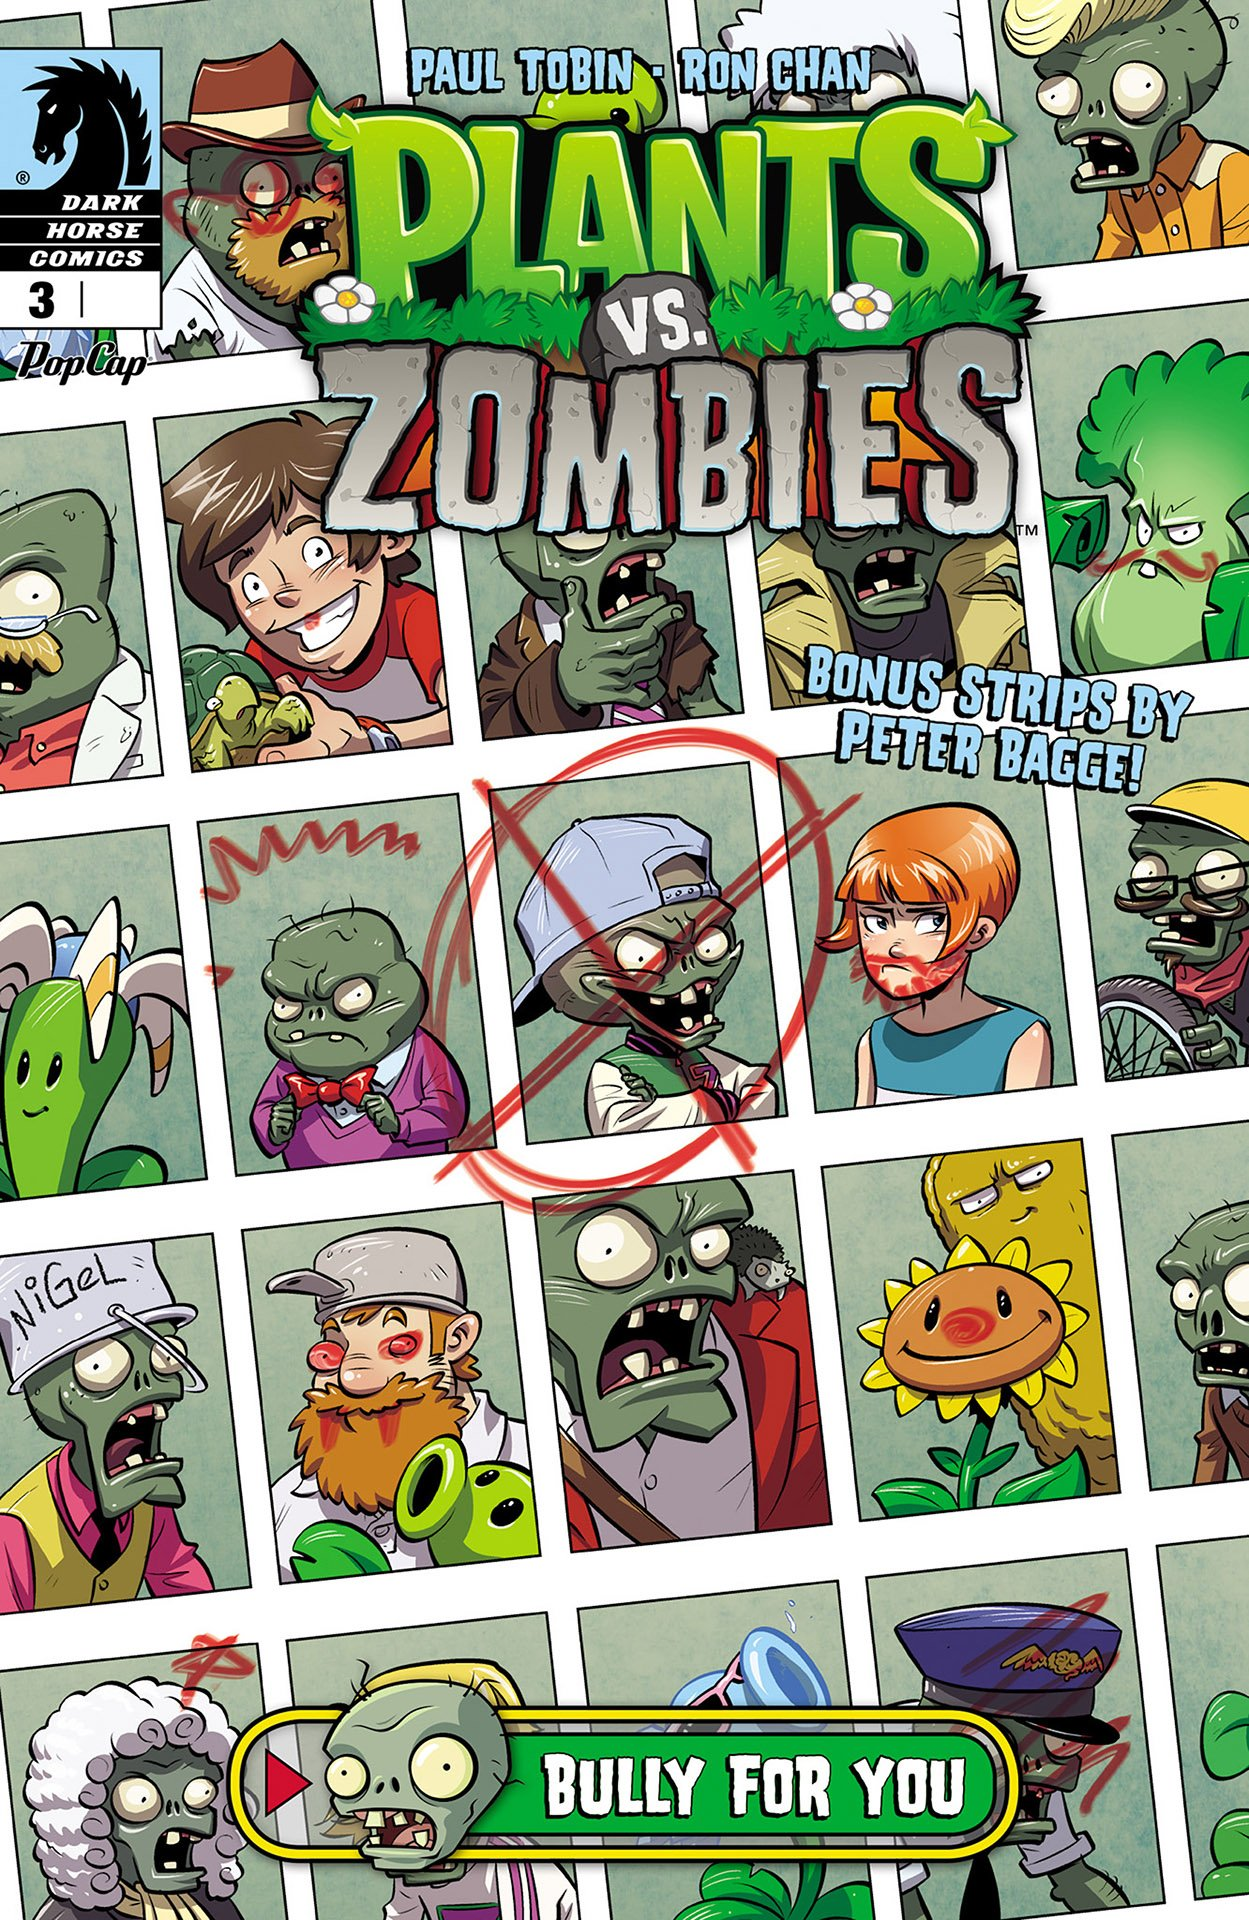 Plants vs. Zombies 003 - Bully for You 3 of 3 (August 2015)